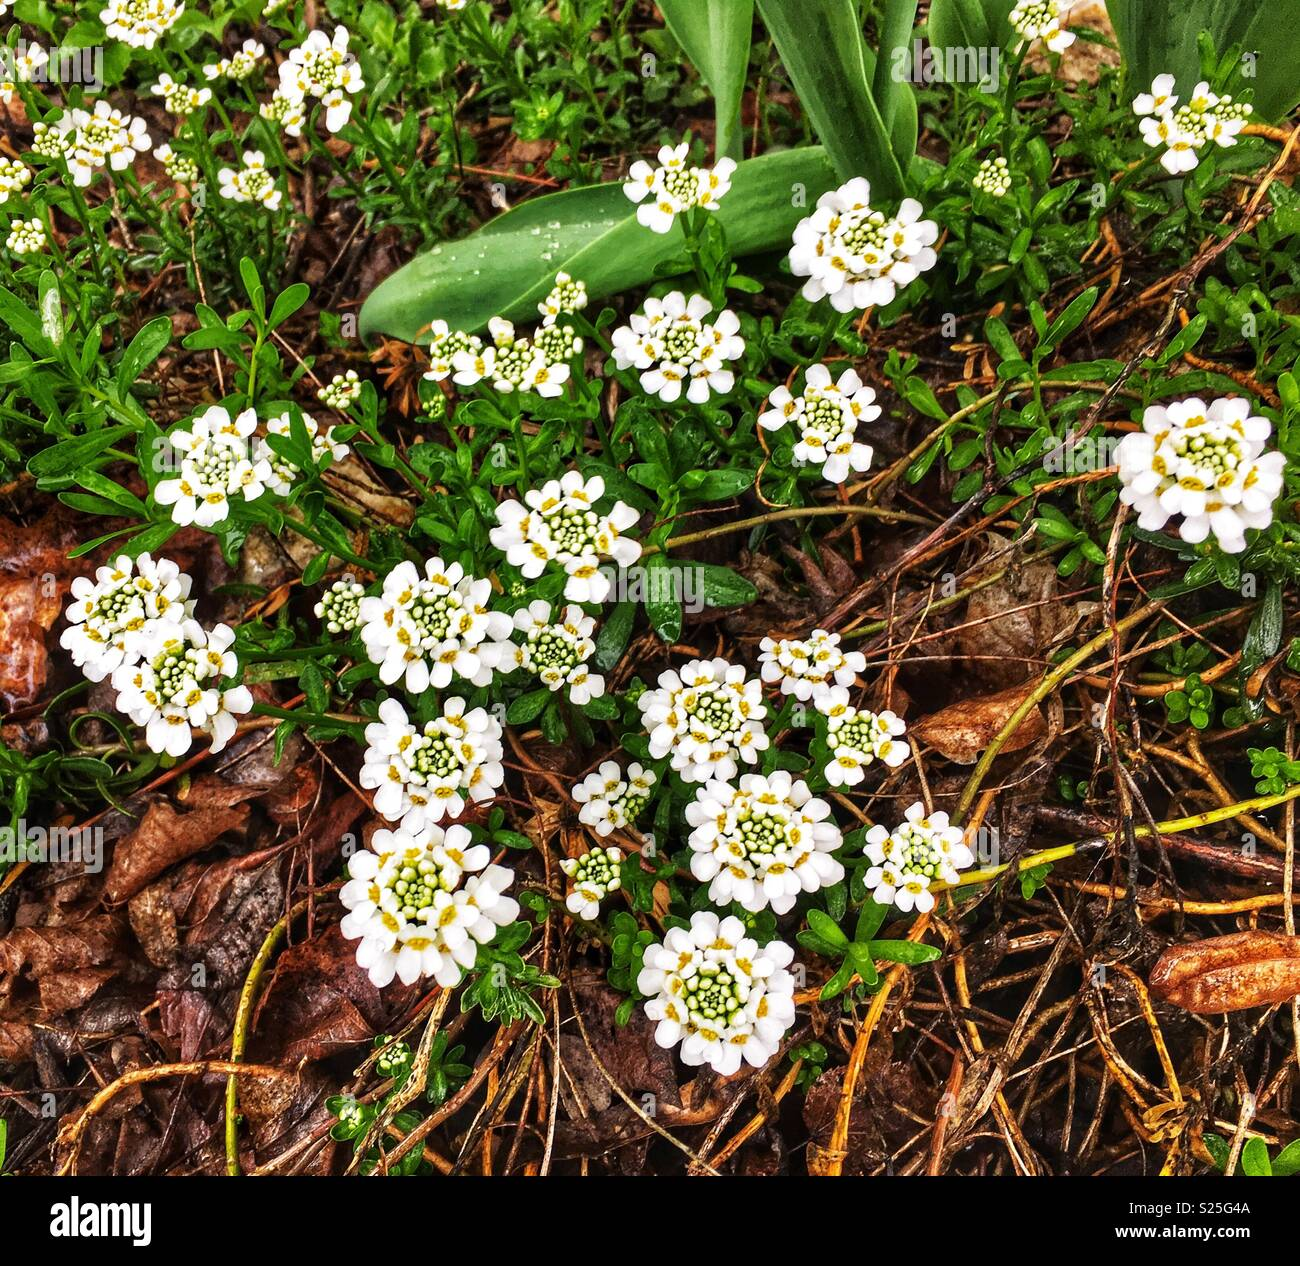 Clusters Of Tiny White Spring Flowers White Candytufts Stock Photo